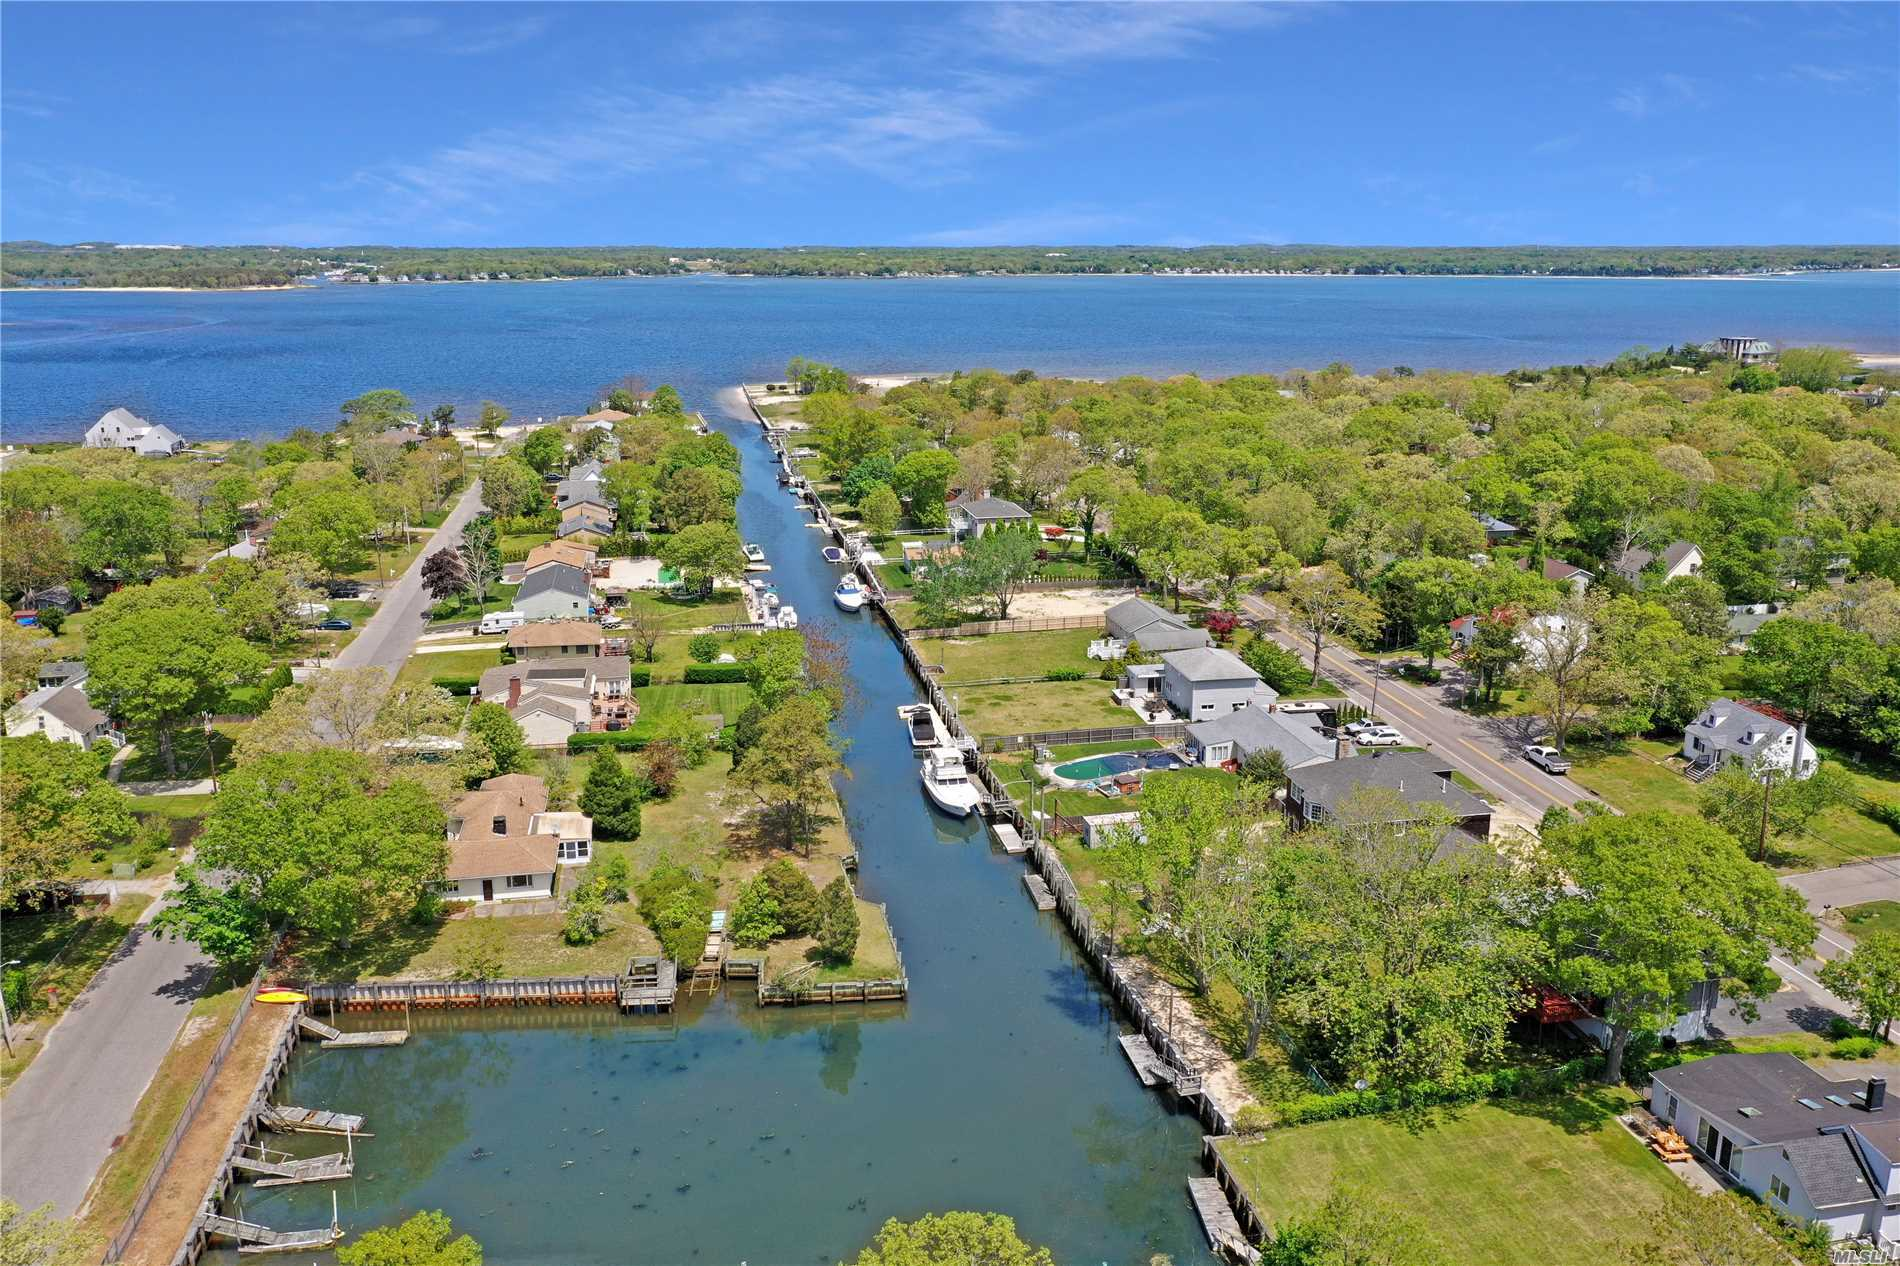 Boater's paradise in a quiet neighborhood! This 3 Bedroom 2 Bath home is ready to move in. The lower level has a den with a fireplace. The home is on a recently restored deep water dock leading to the Peconic Bay. If you are not in the mood to go boating, walk to the private beach! Grab one of the last affordable pieces of waterfront in the Town of Southampton!